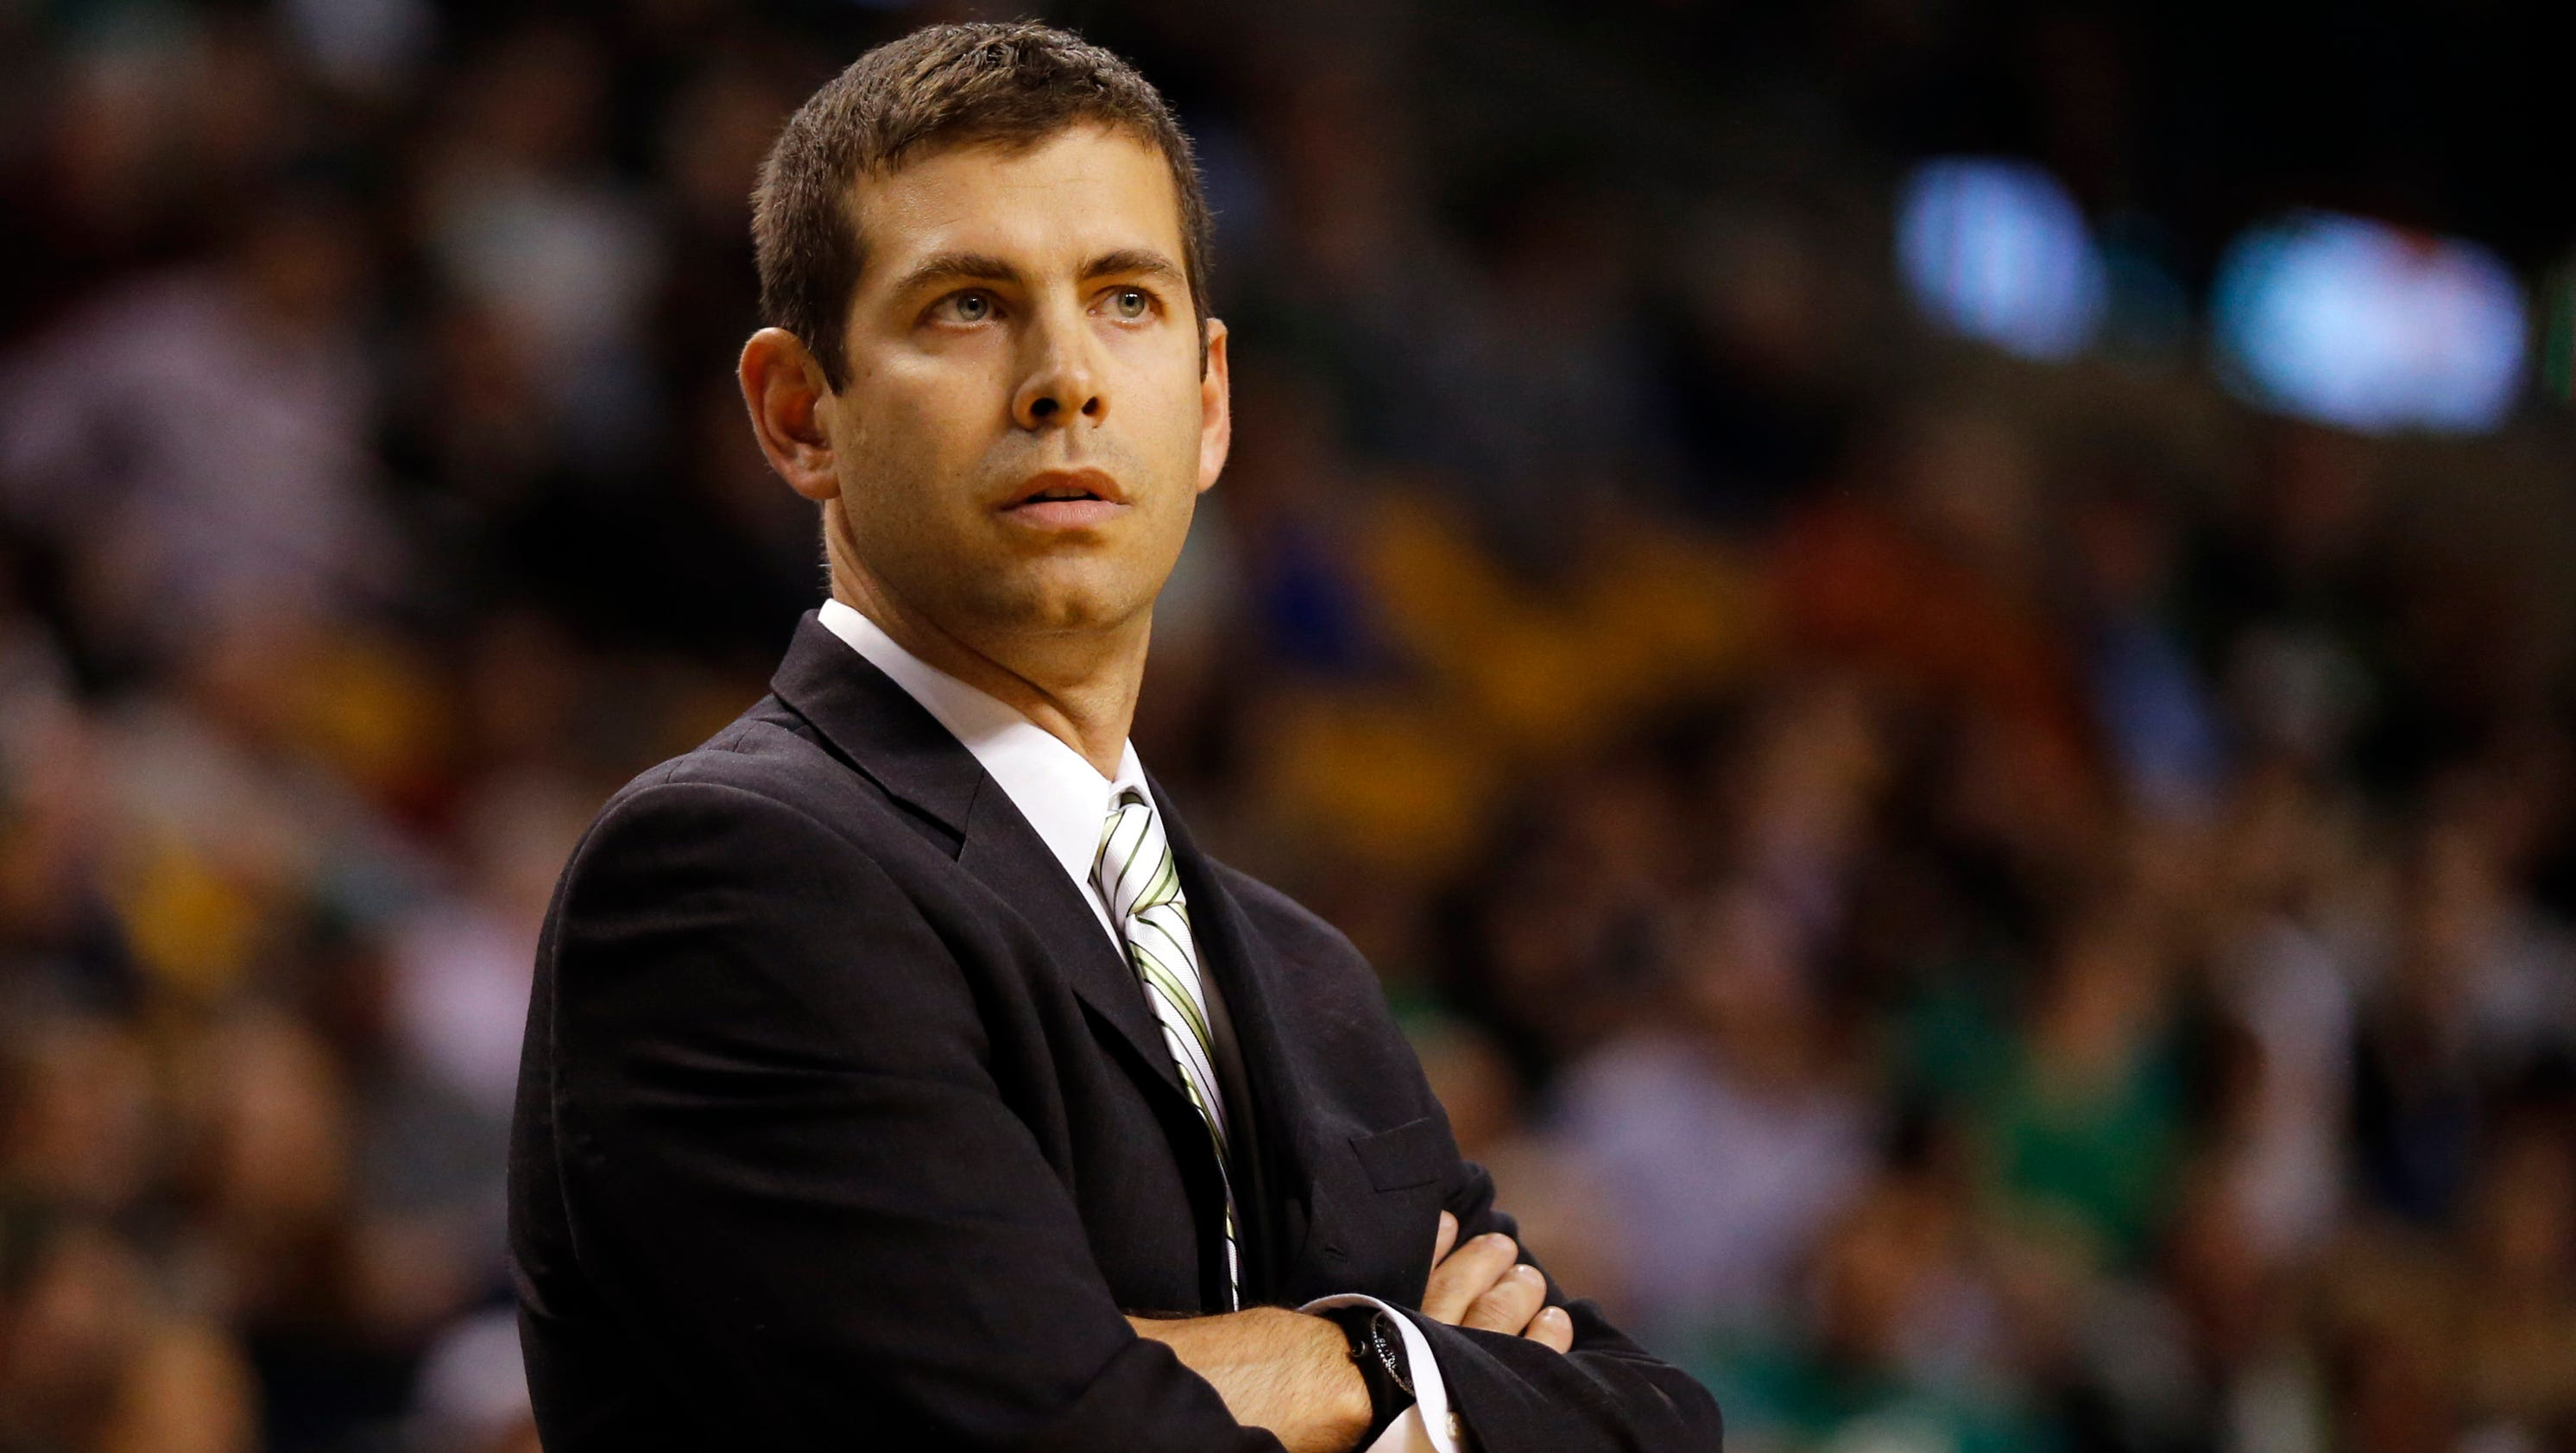 The day that rocked Butler: Story behind Brad Stevens' departure for Celtics